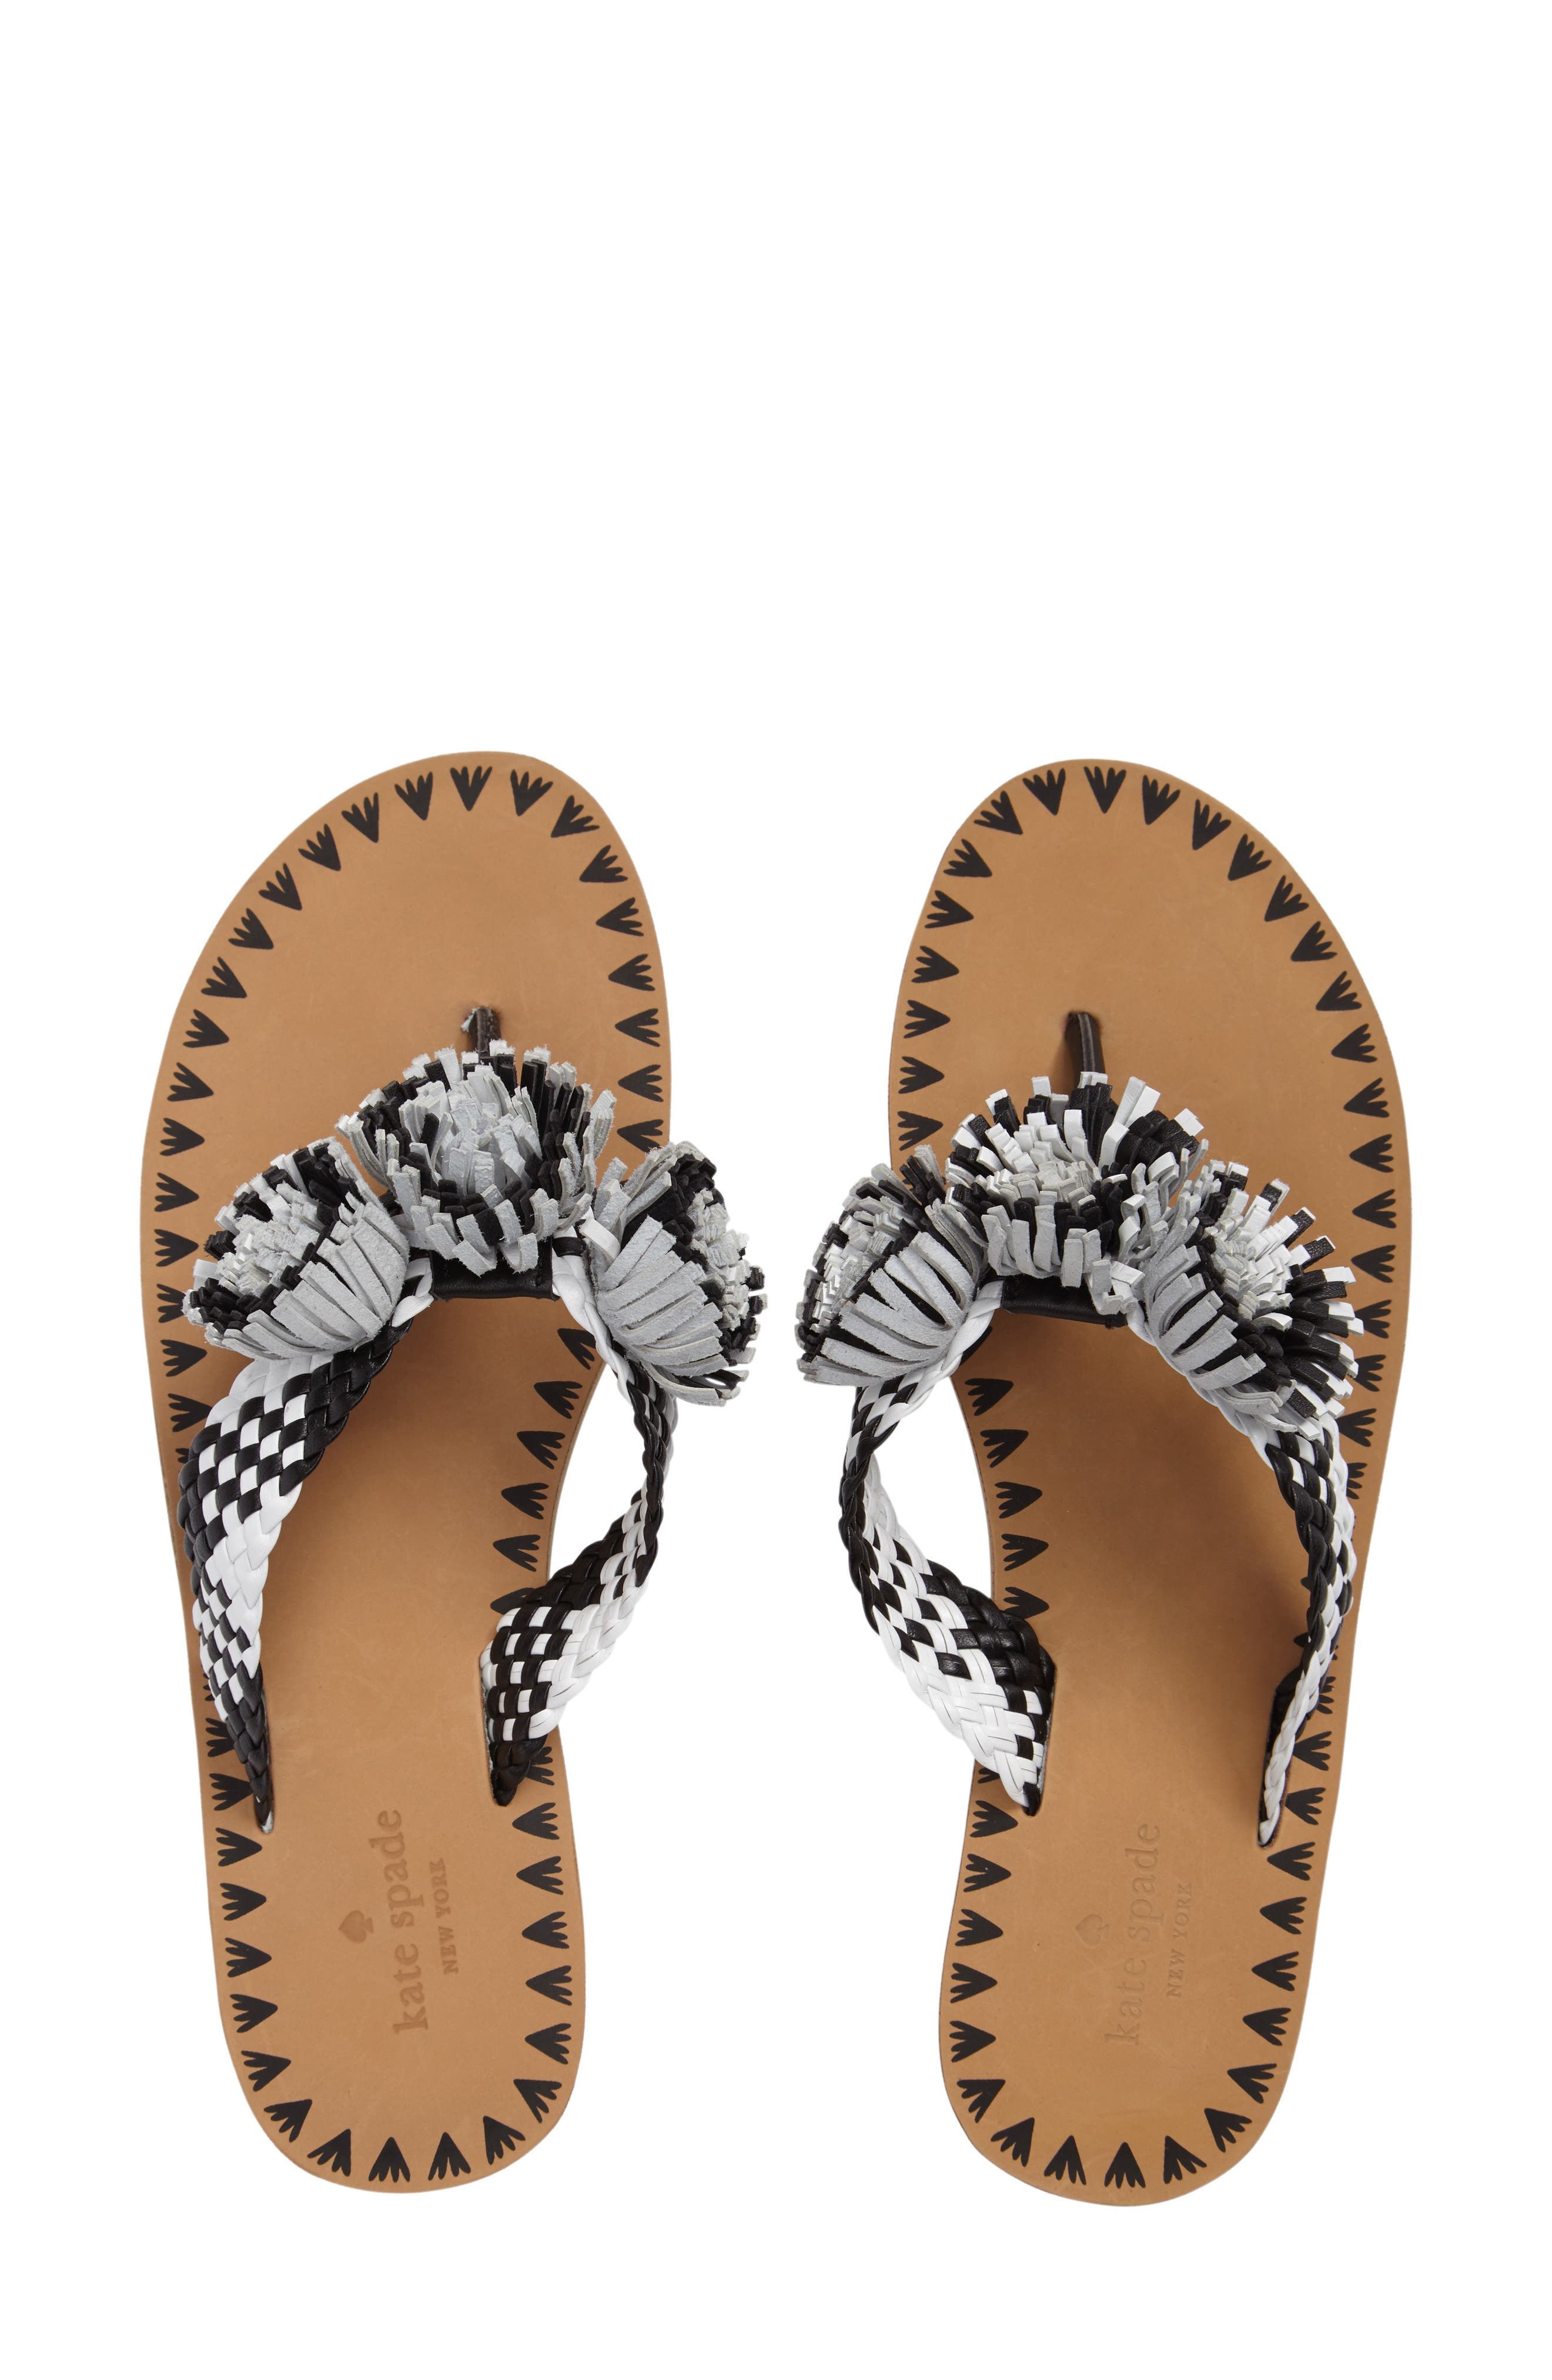 Alternate Image 1 Selected - kate spade new york idette fringe flip flop (Women)